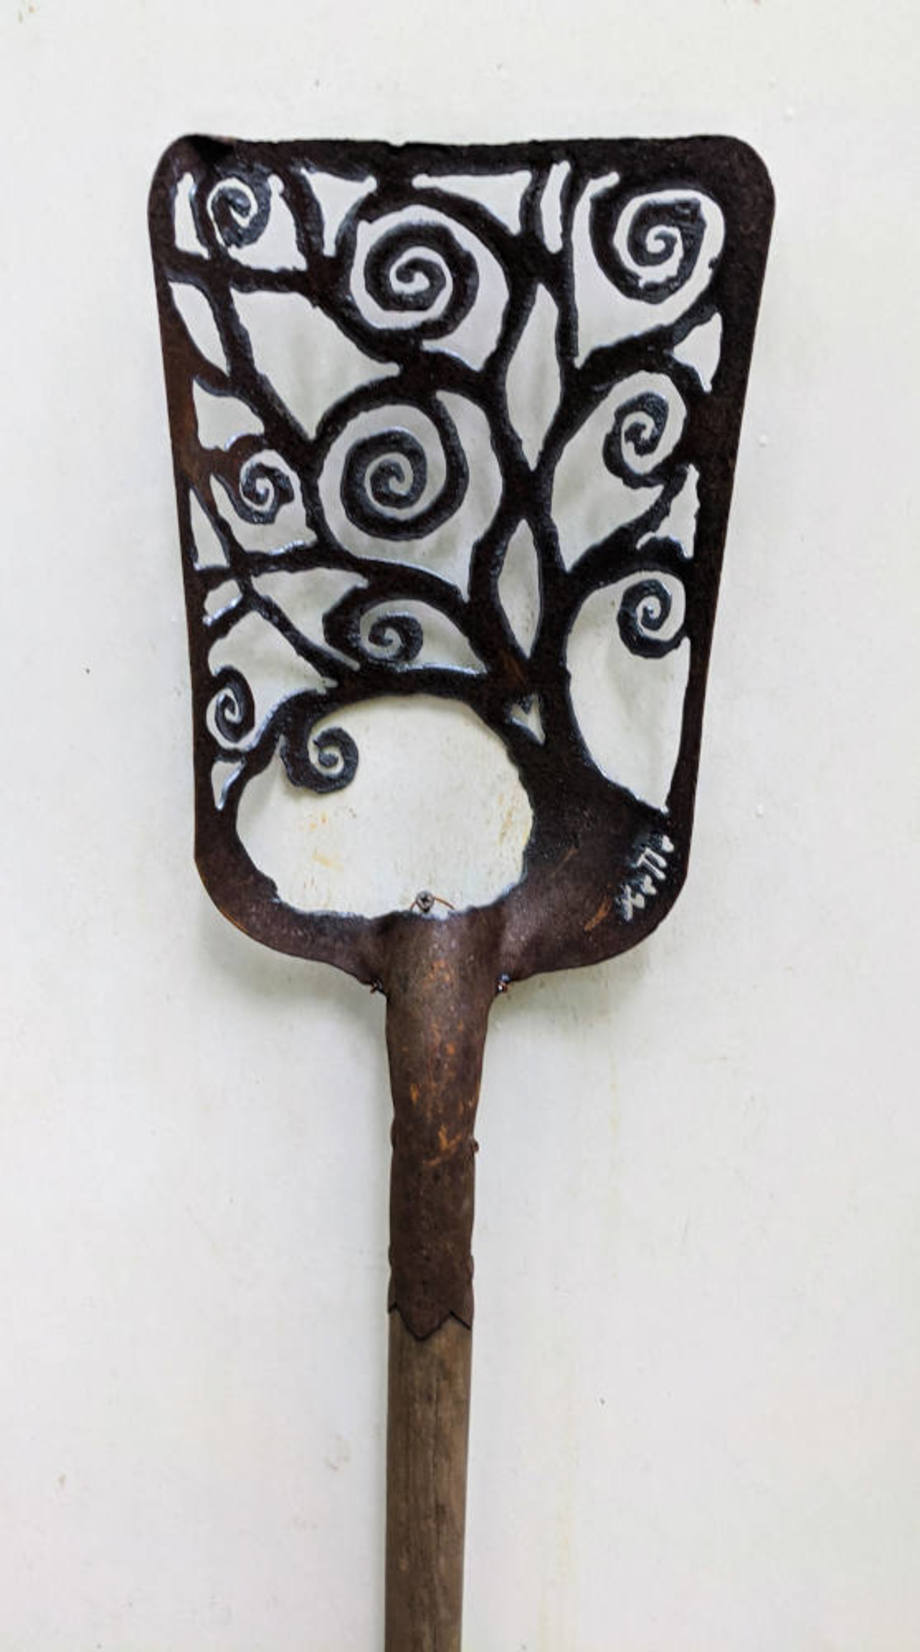 Leaning Spiral Tree shovel